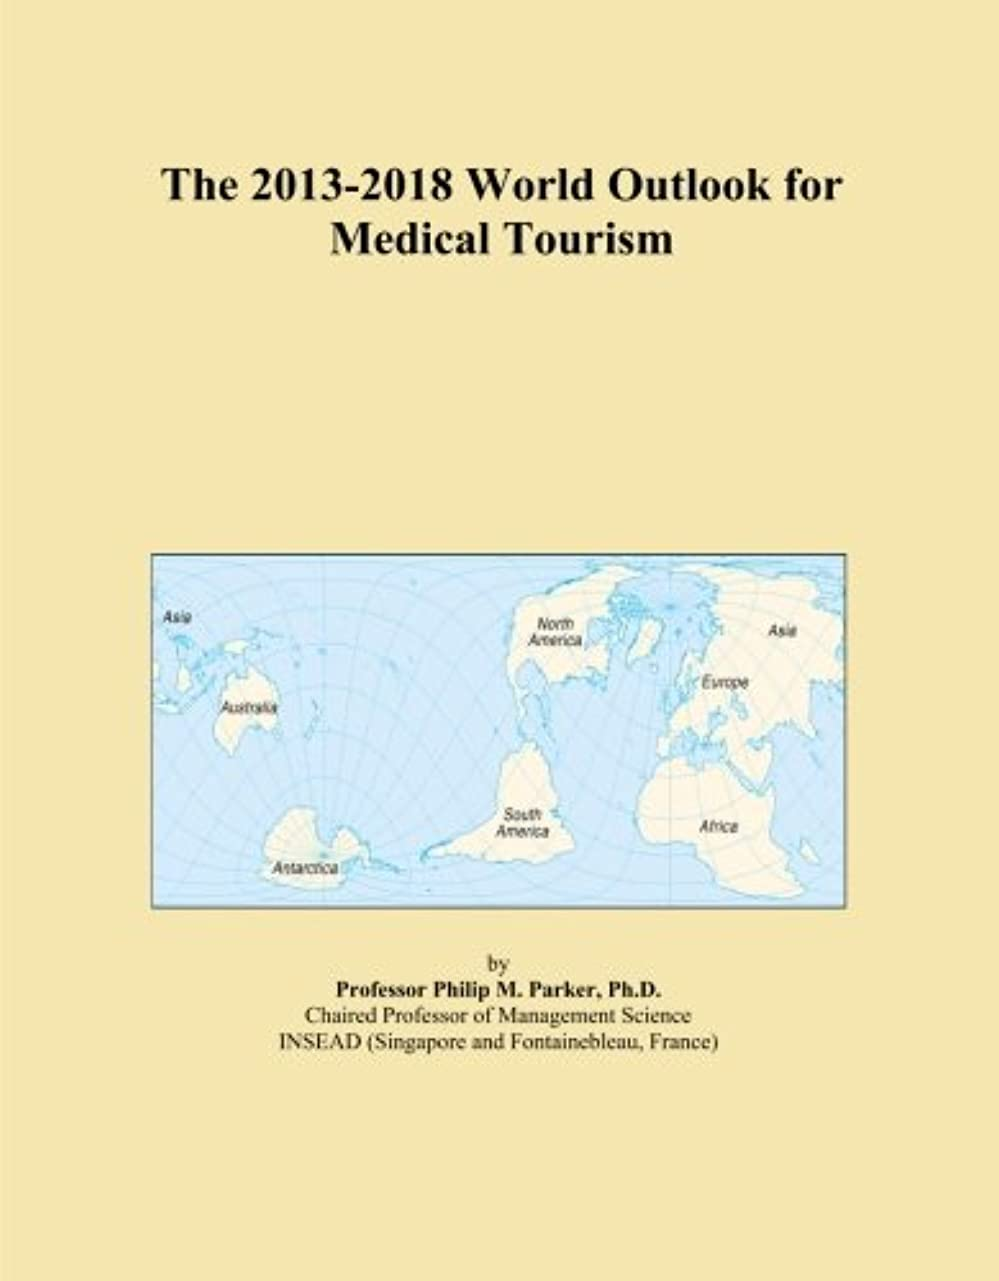 シンボル保護正しくThe 2013-2018 World Outlook for Medical Tourism